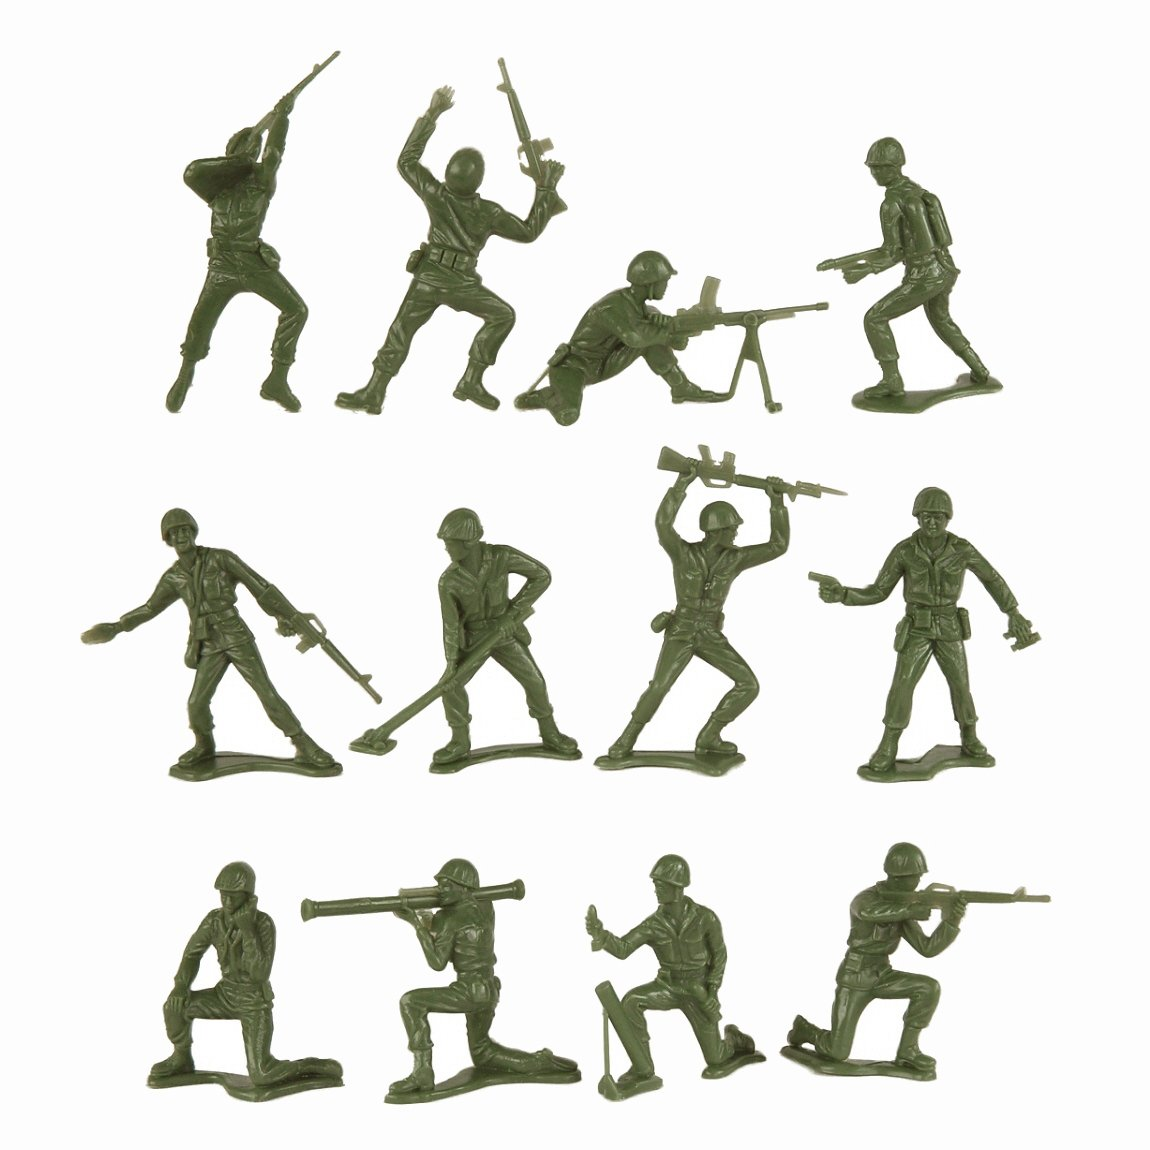 The Poses Of Green Plastic Army Men Toys Are Fairly